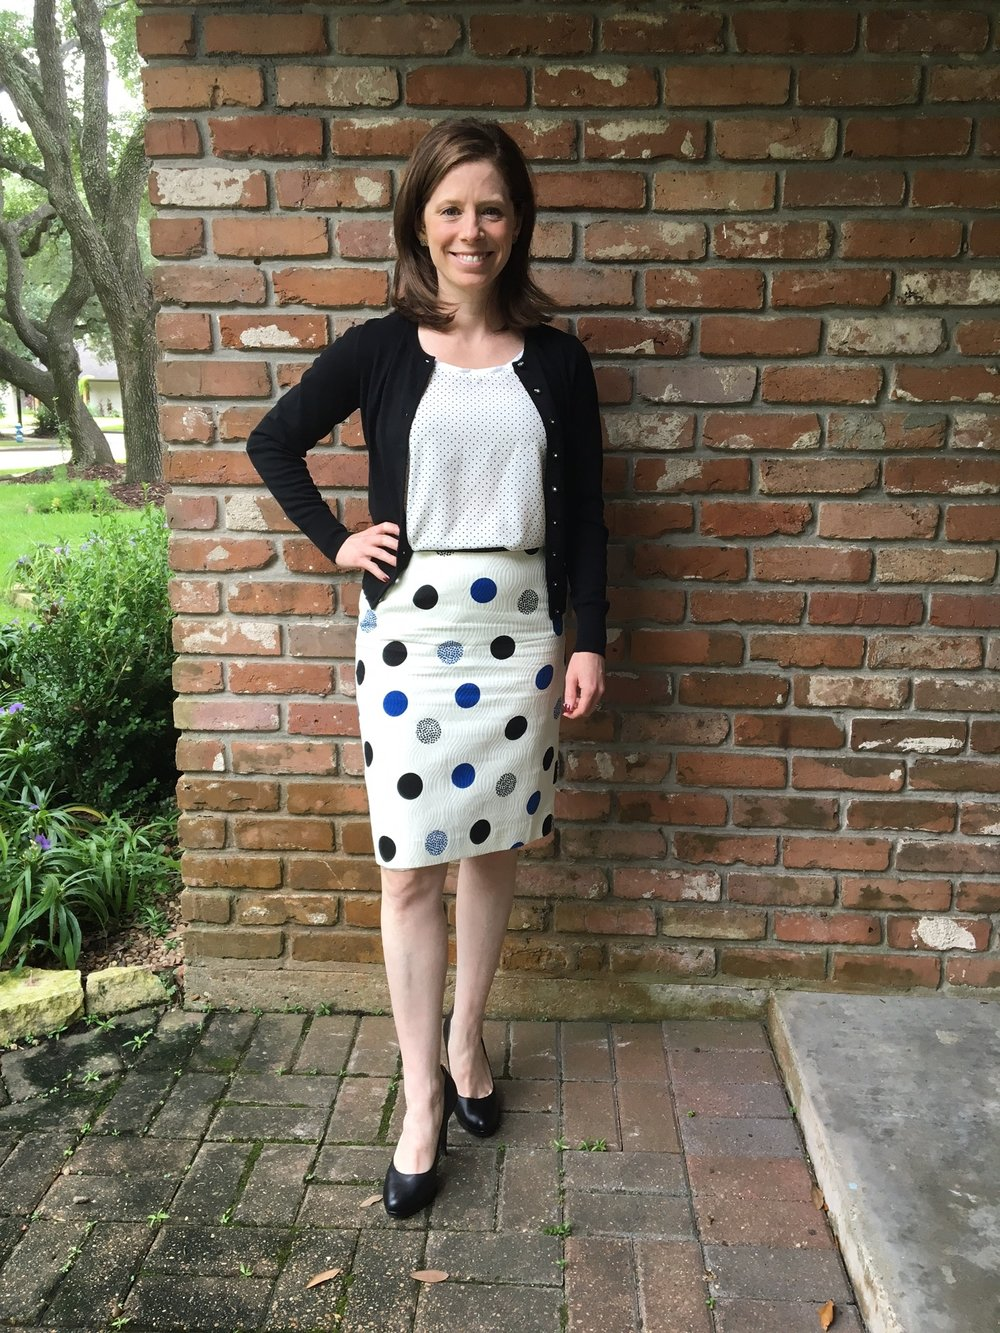 Polka dots with polka dots? Mind blown. Another combo I would not have put together, Also, cardigans are cute and professional; why am I not wearing them?!